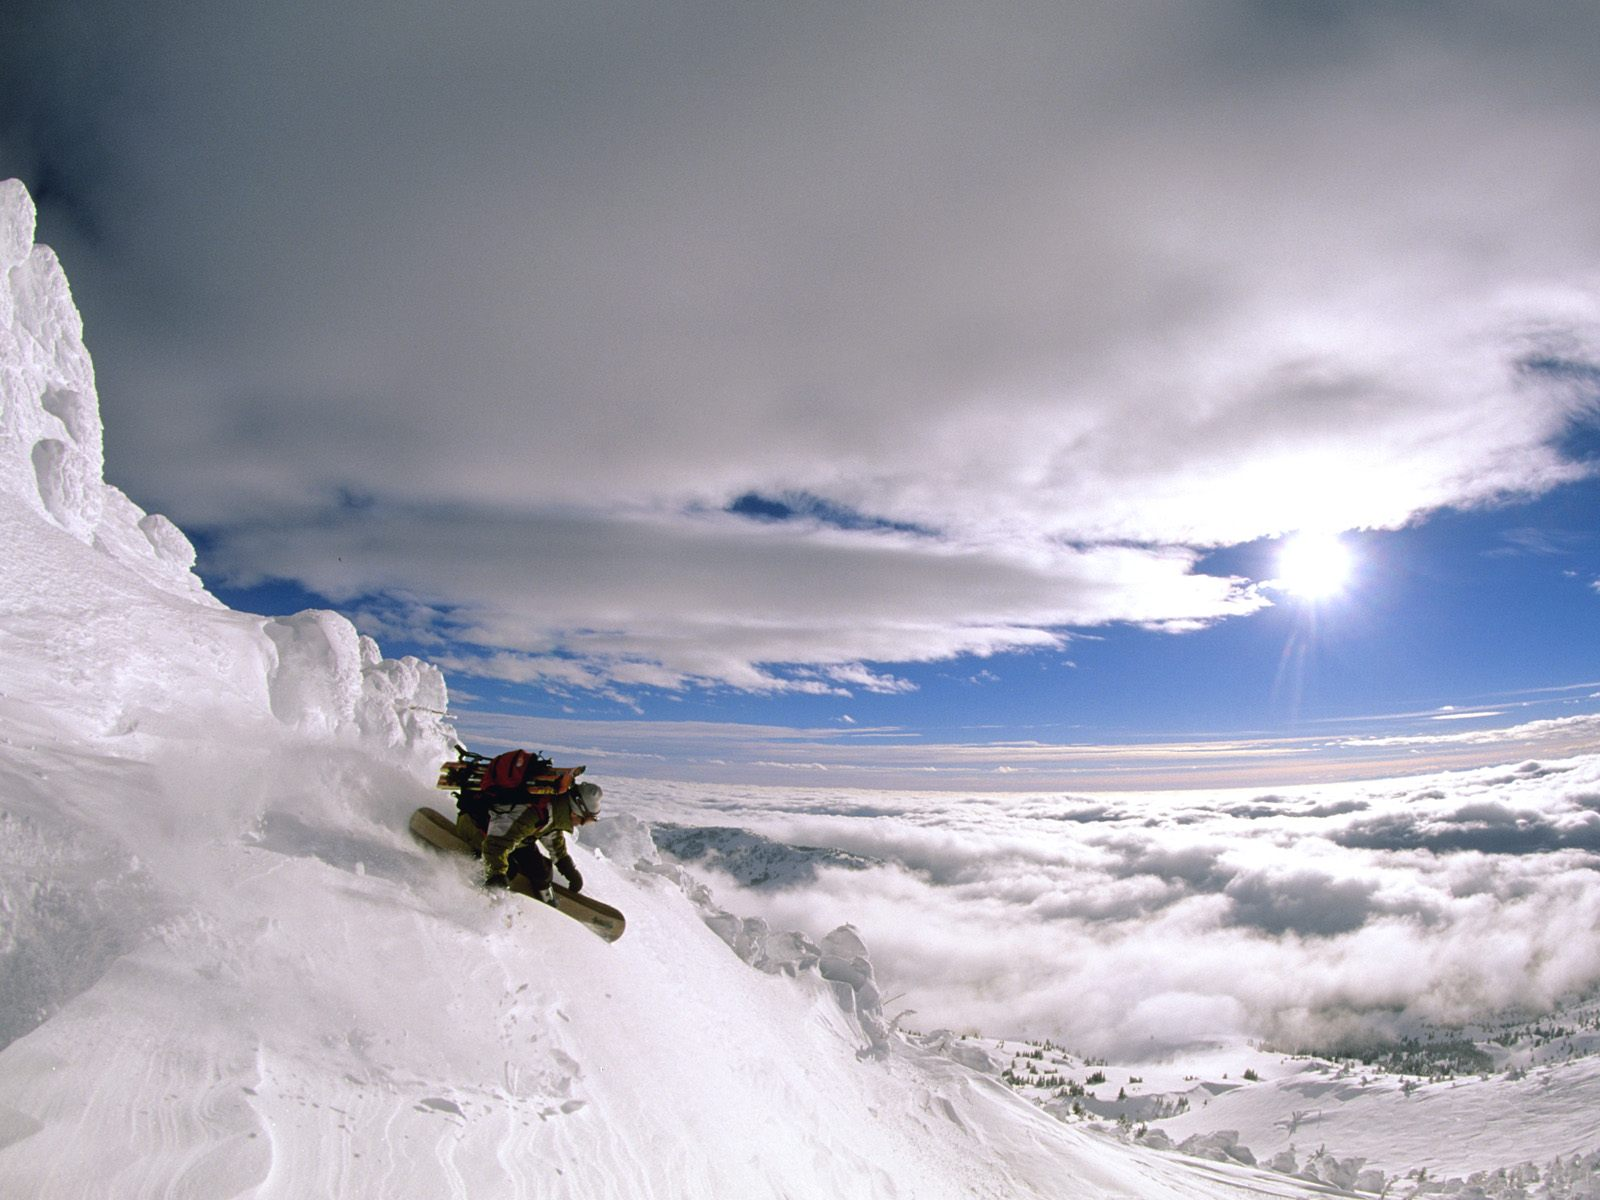 extreme snowboarding wallpapers - photo #11